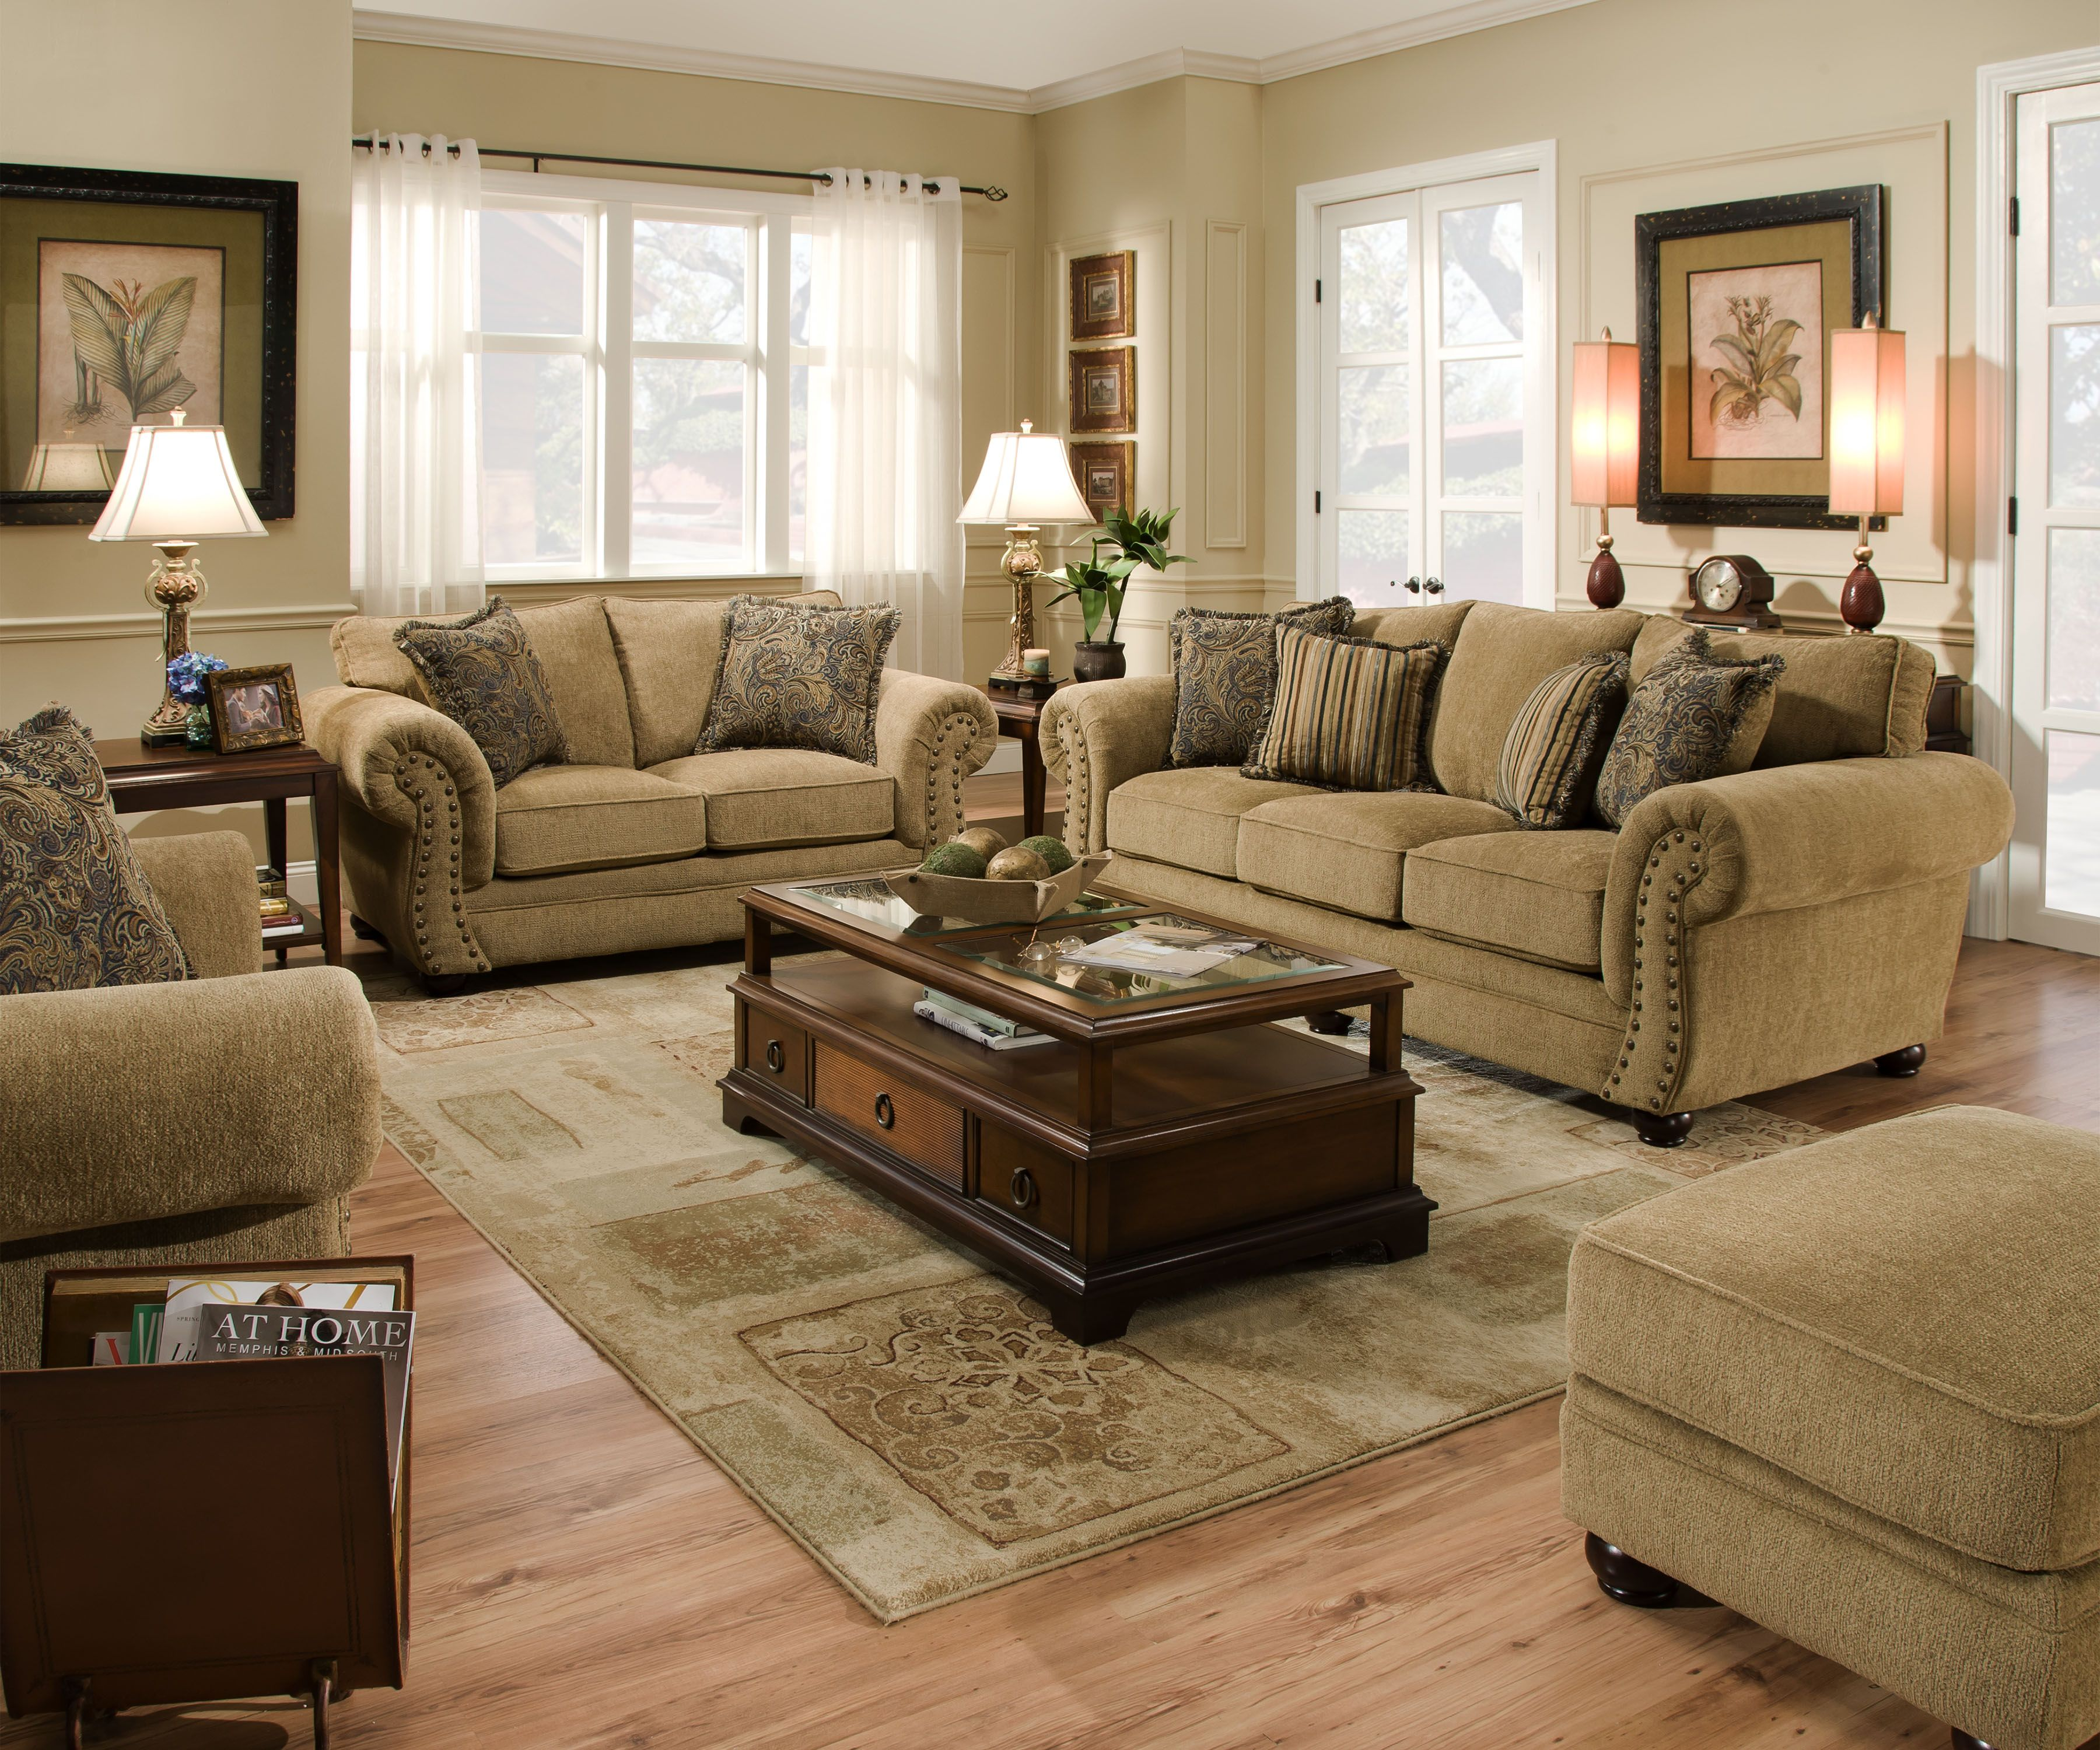 sears living room sectionals best flooring for kitchen simmons upholstery 4277 pk l victoria loveseat antique outlet